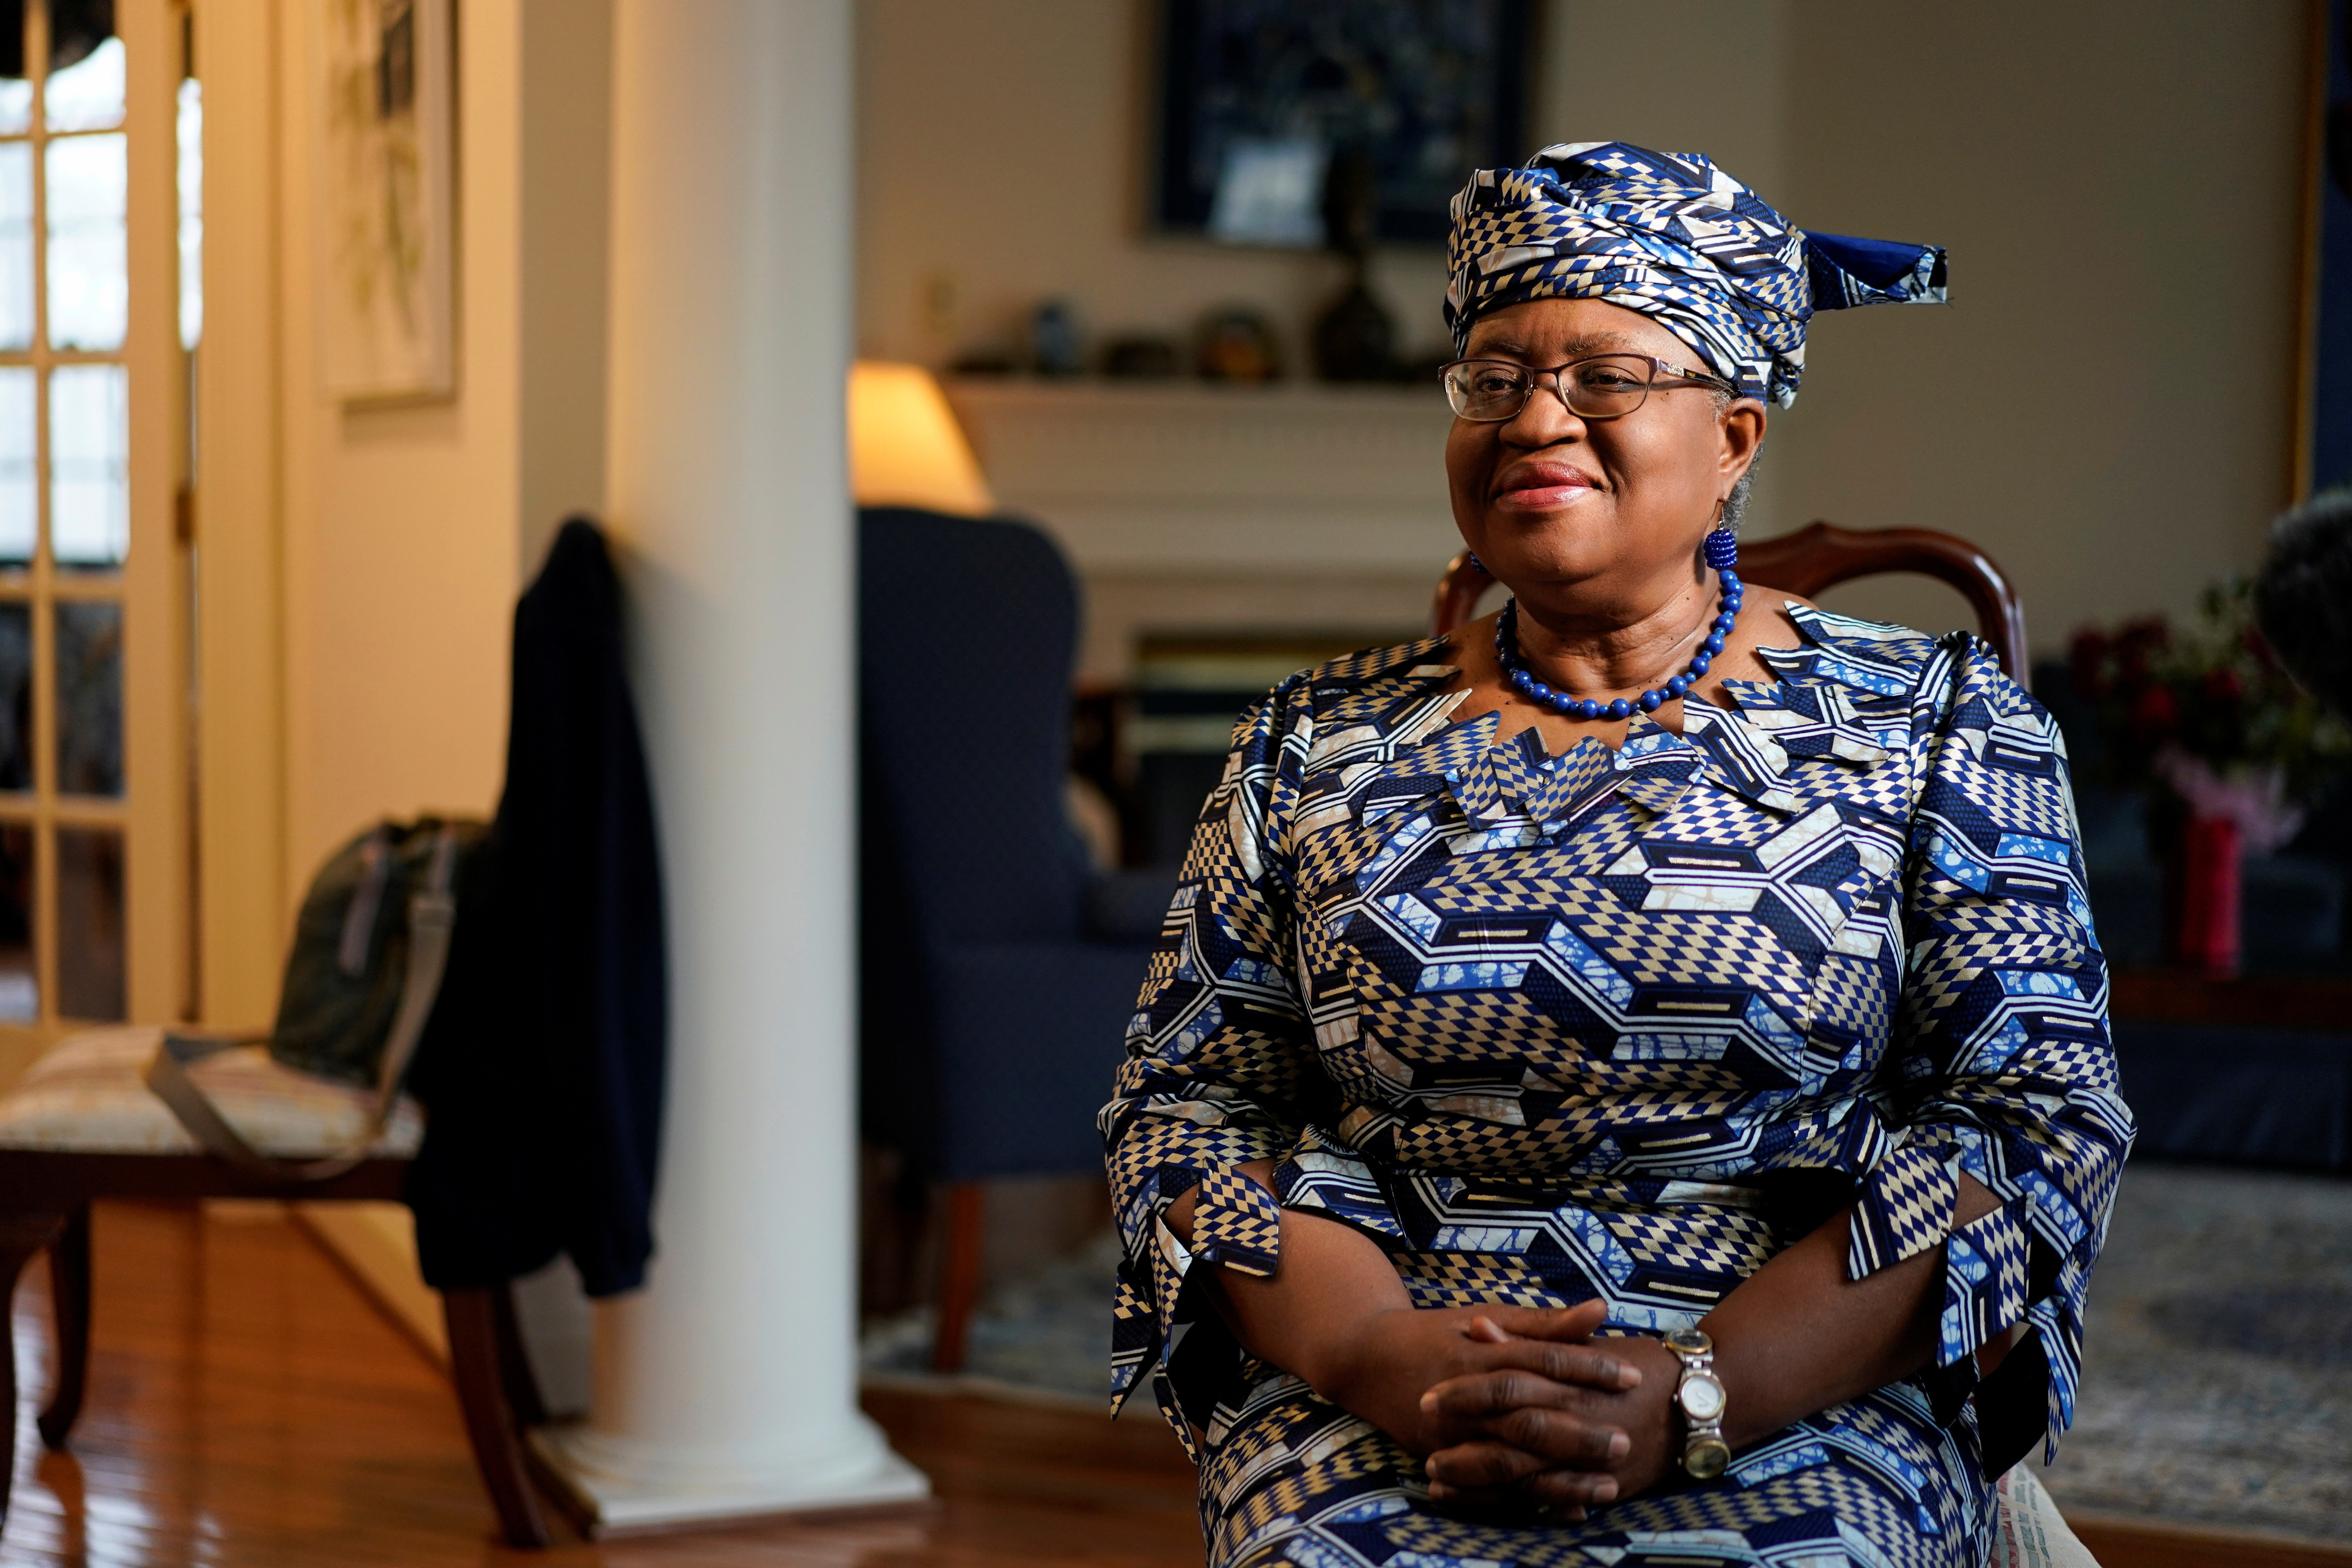 Image of incoming World Trade Organization President Ngozi Okonjo-Iweala during an interview with Reuters in Potomac, Maryland.